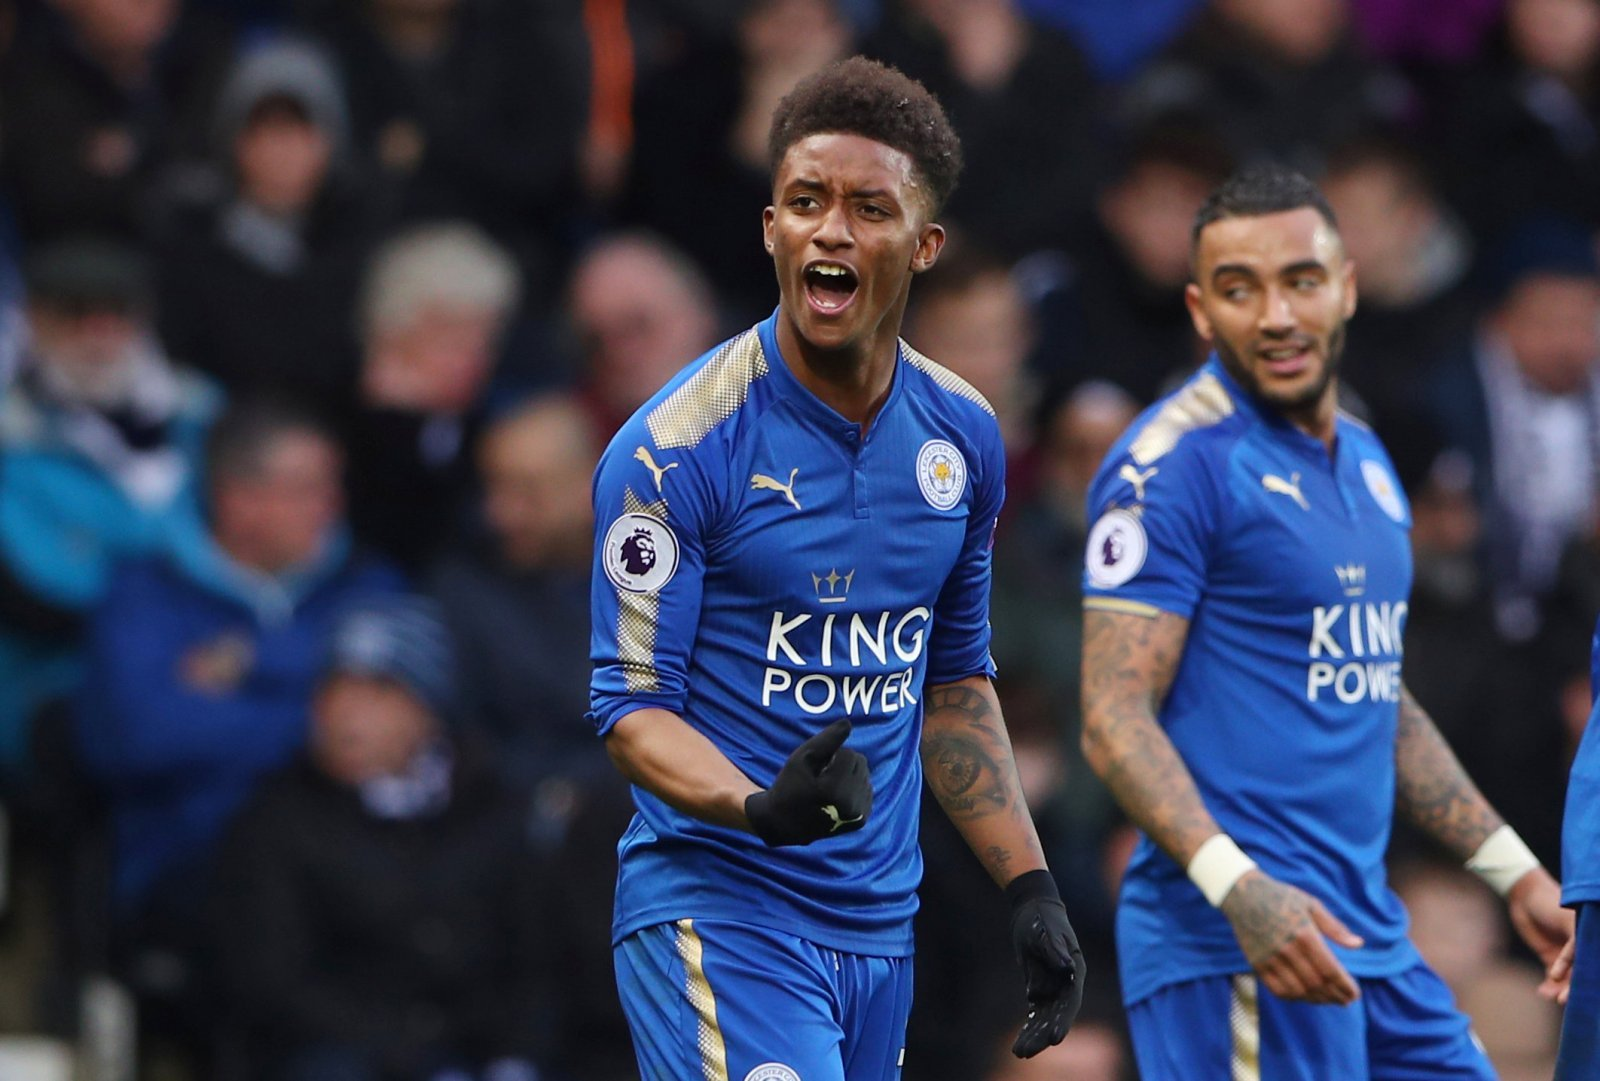 Leicester's addition of Ghezzal should prompt Southampton into Demarai Gray move